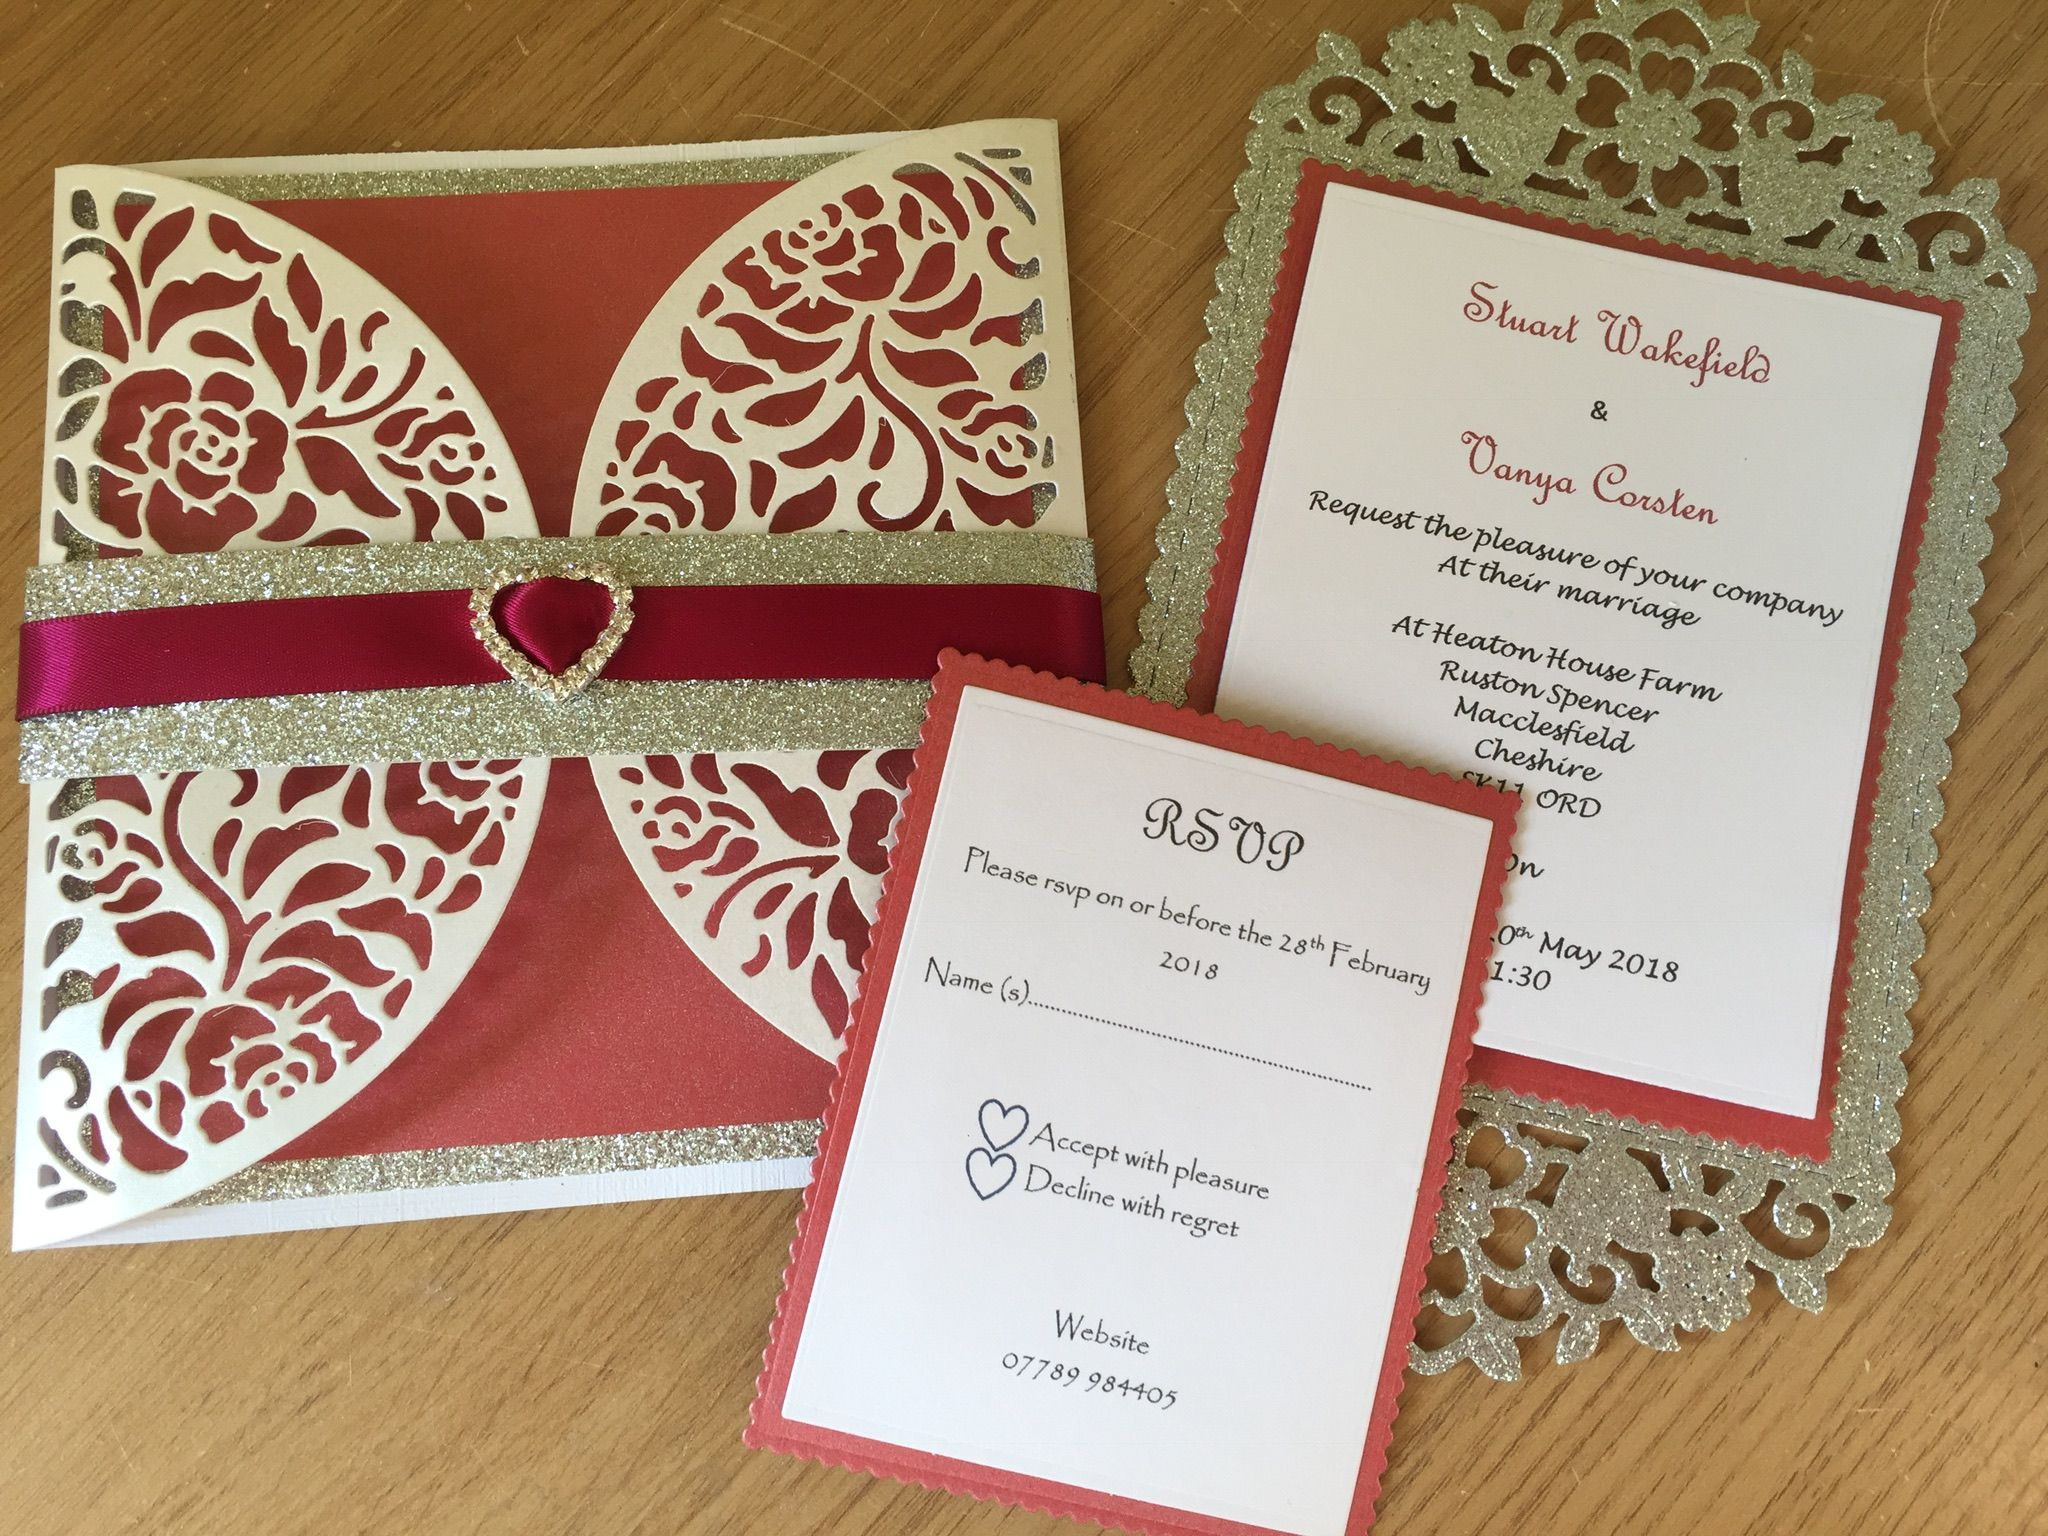 Attractive Wedding Invitation Name Etiquette Collection ...